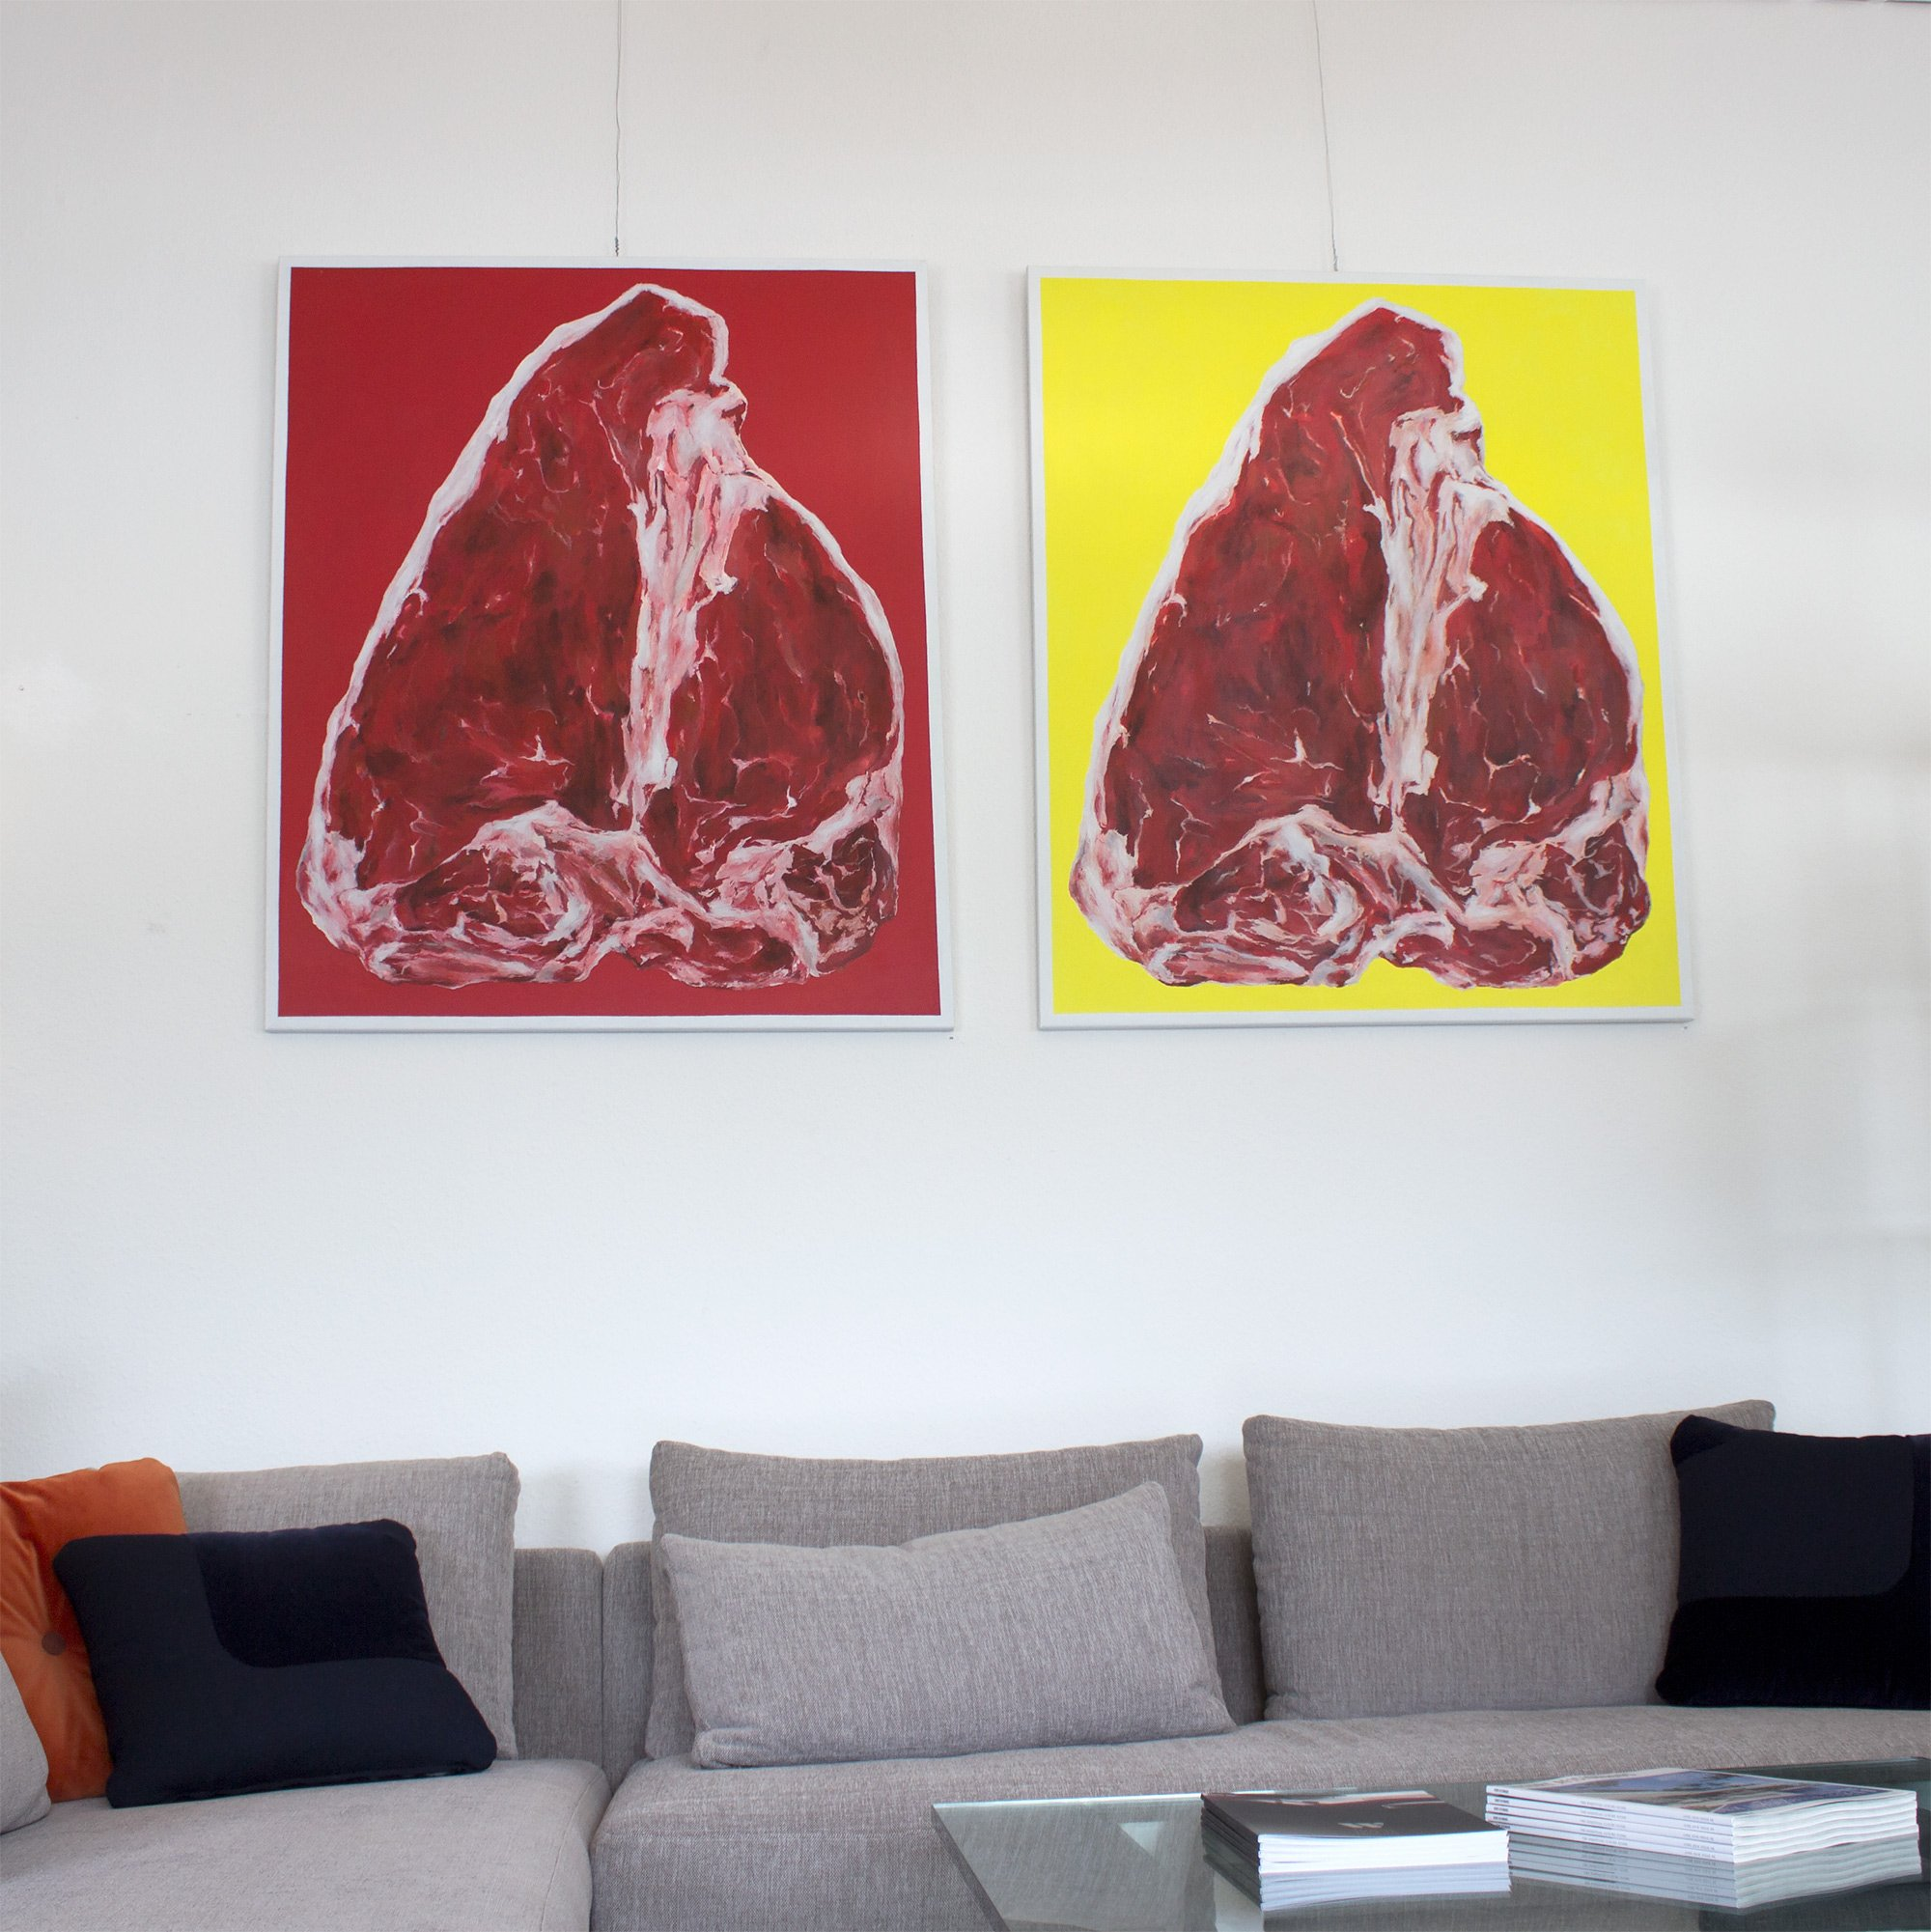 Art exhibitions in Copenhagen. Modern, colorful, and abstract paintings. Beautiful and beautiful drawings. Limited edition art posters, art prints and posters. Experience art from gifted and talented artists.